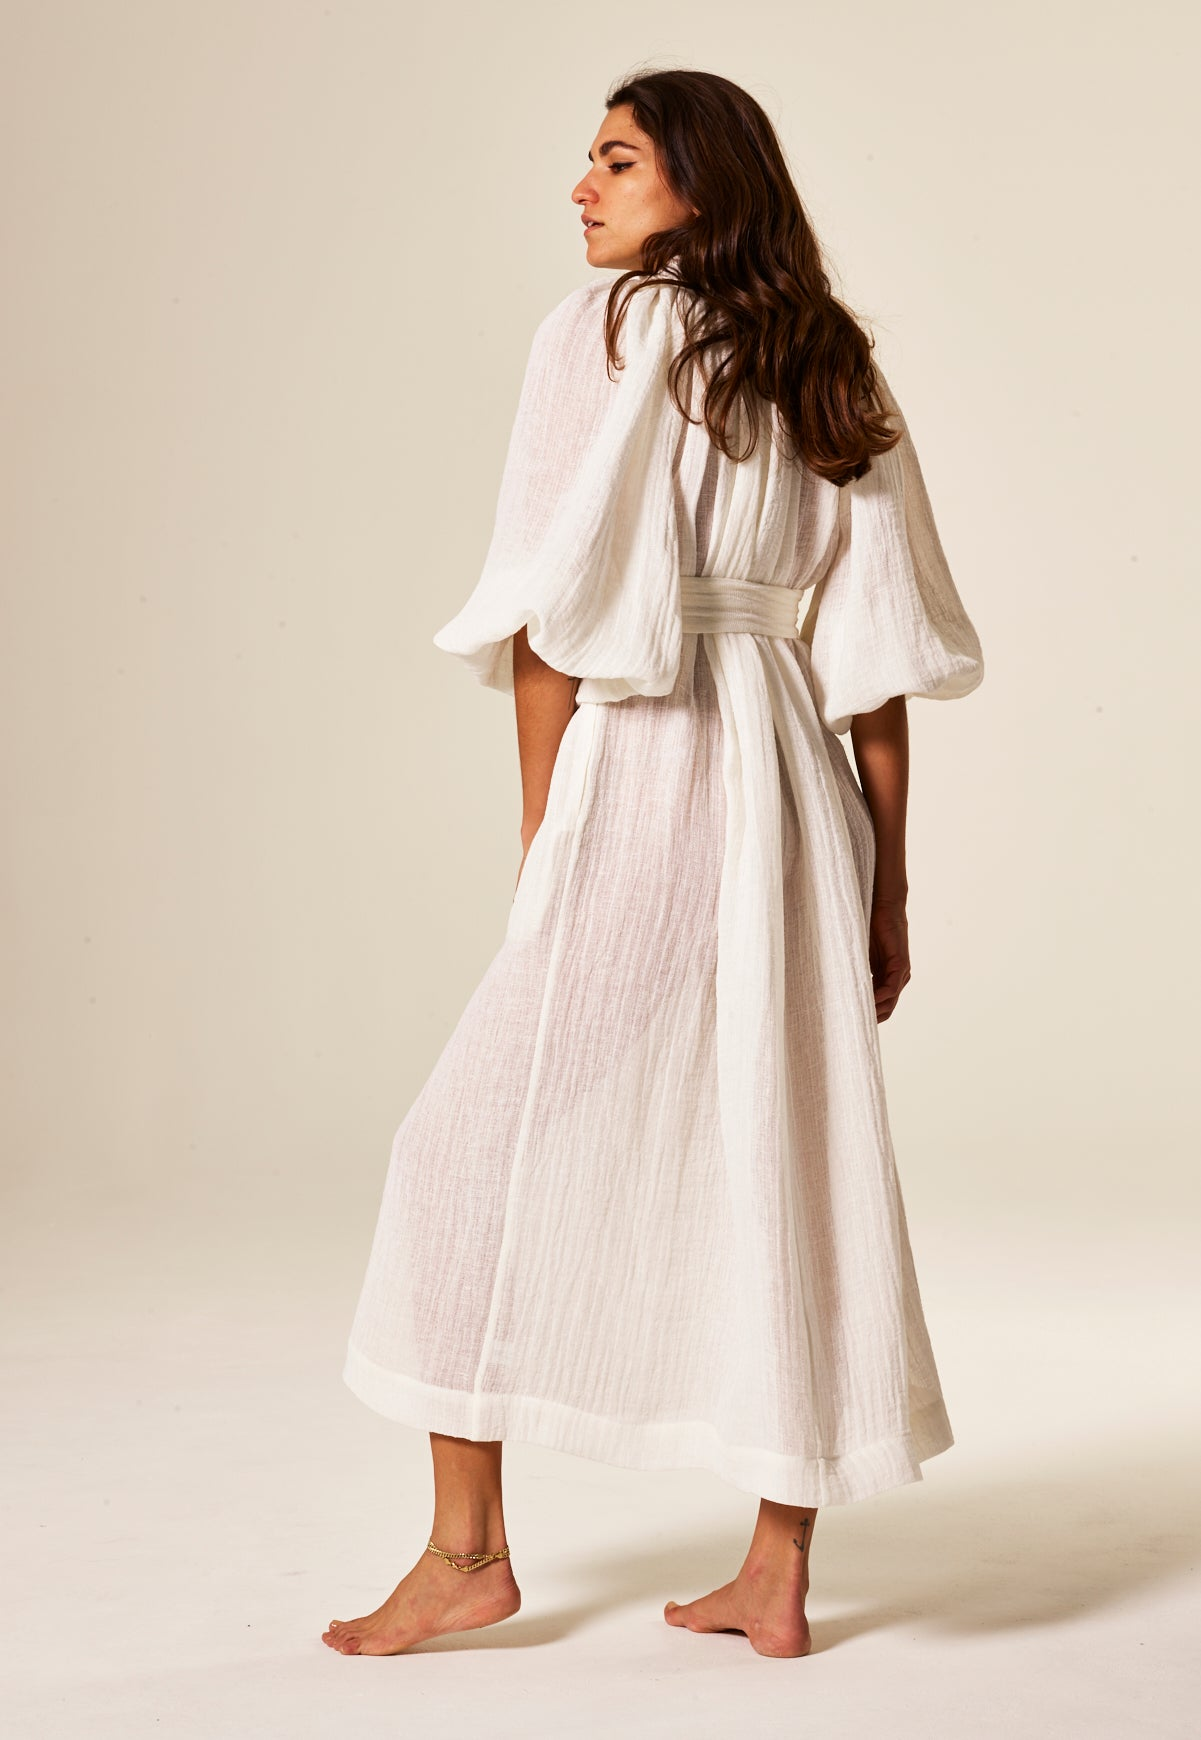 POET WHITE GAUZE DRESS